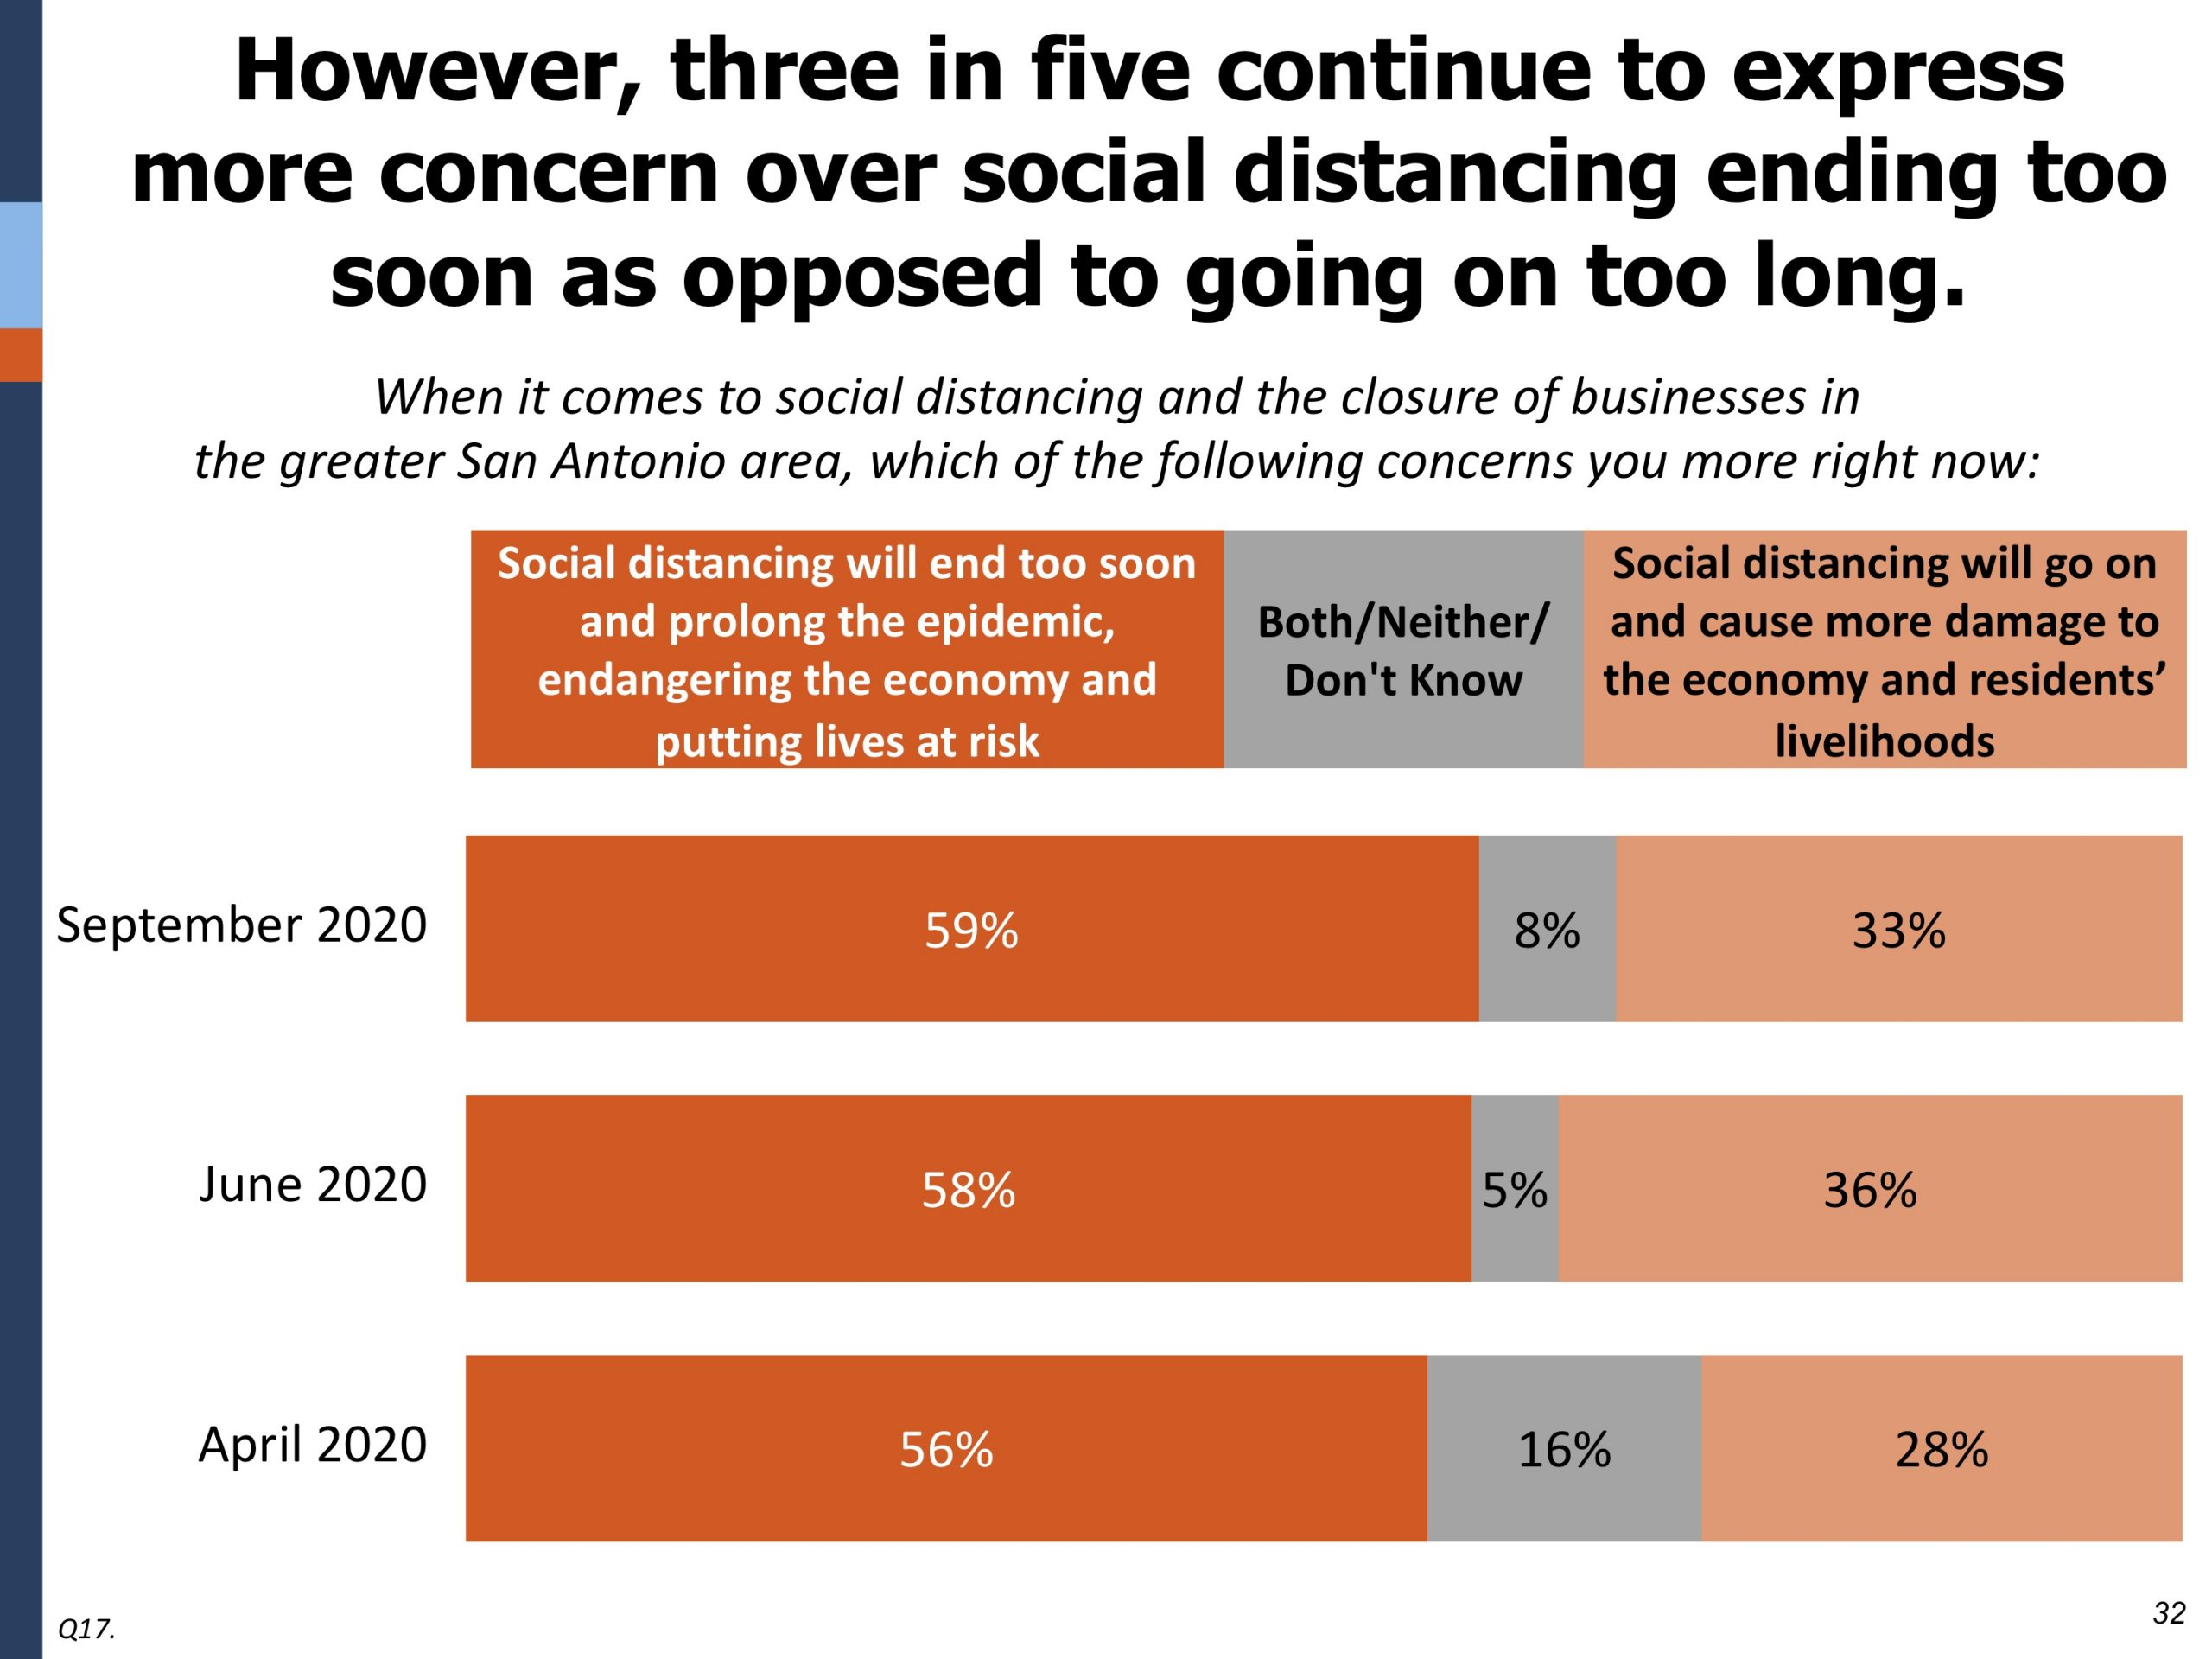 This graph shows poll results indicating that most people are concerned social distancing will end too soon.